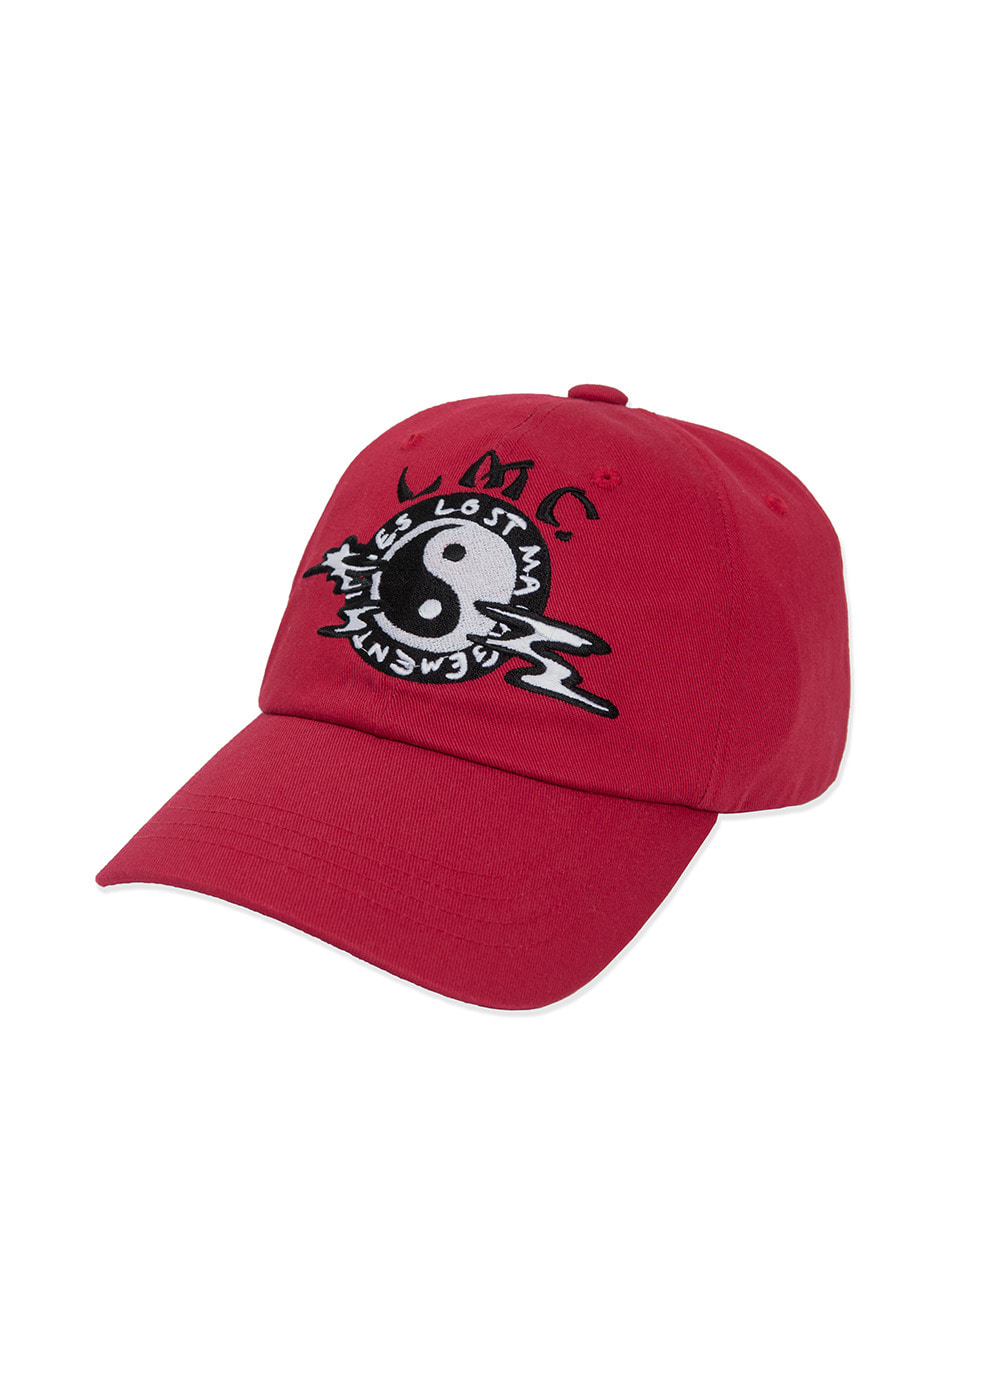 LMC YING YANG 6 PANEL CAP red